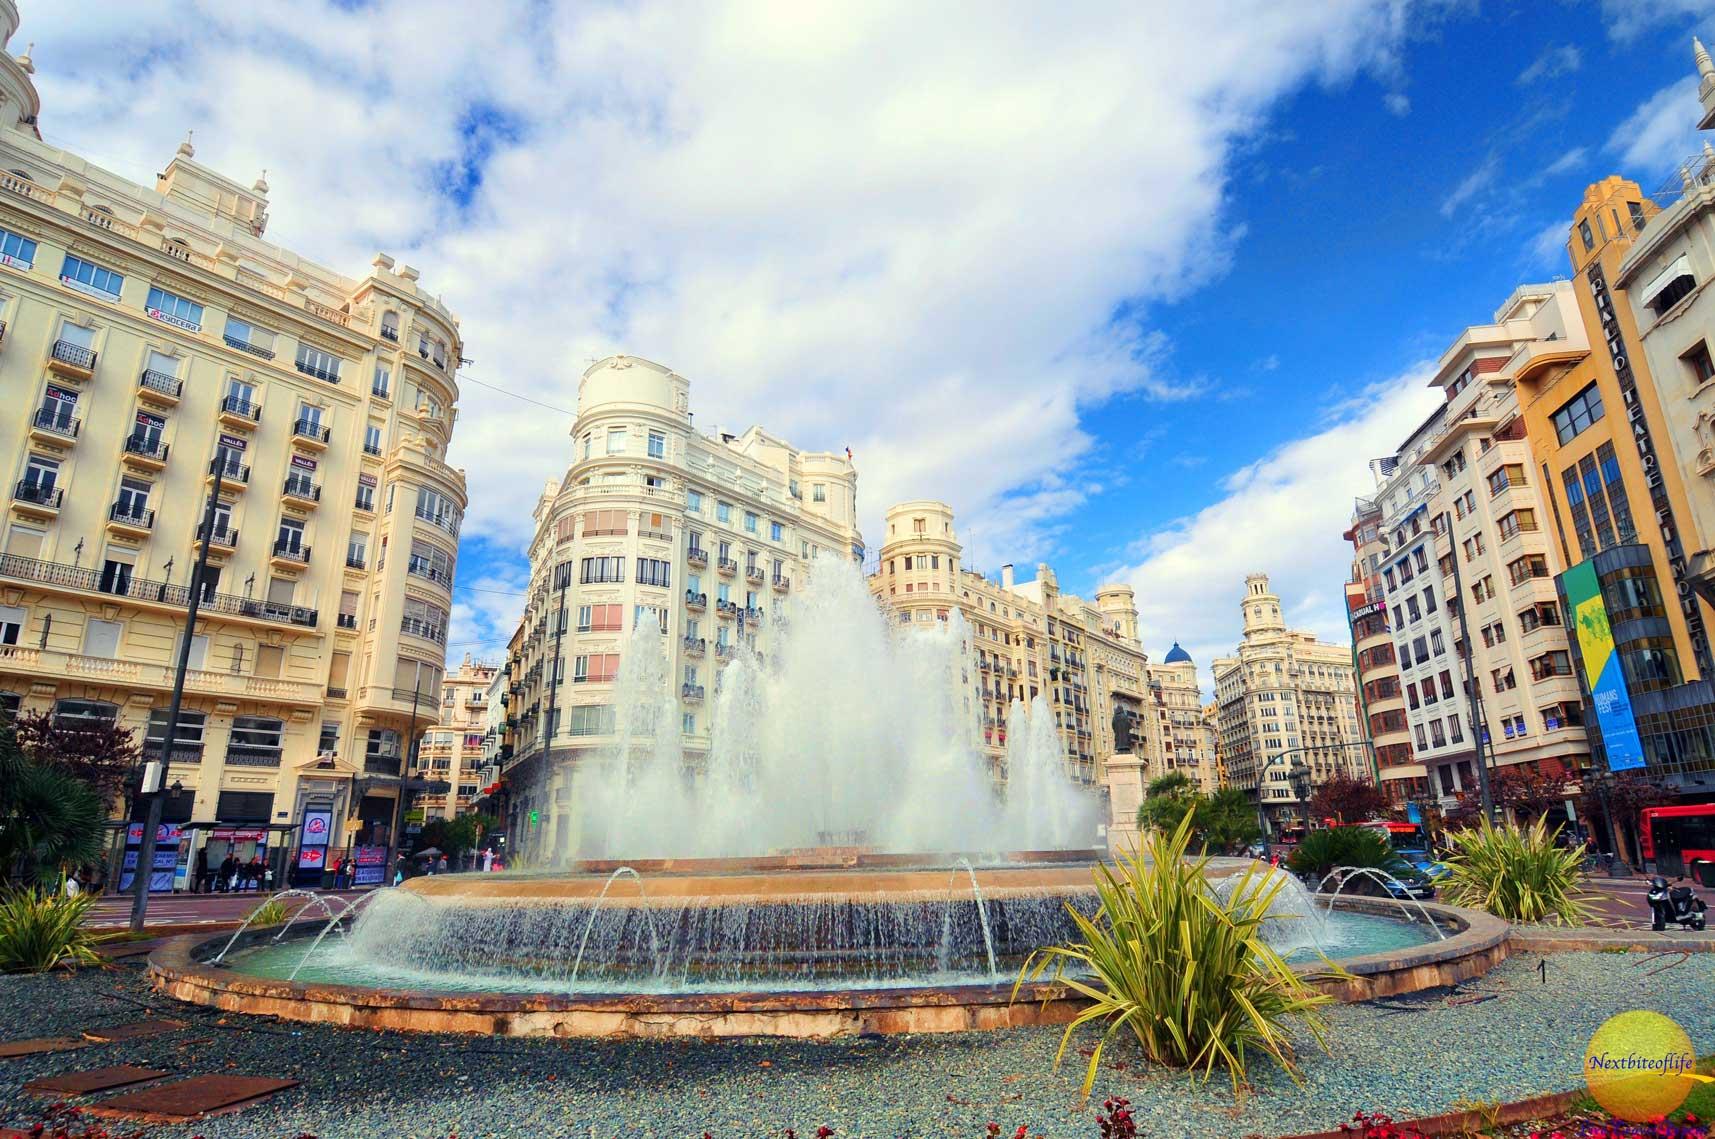 4 Reasons Why Valencia Spain Makes Us Happy